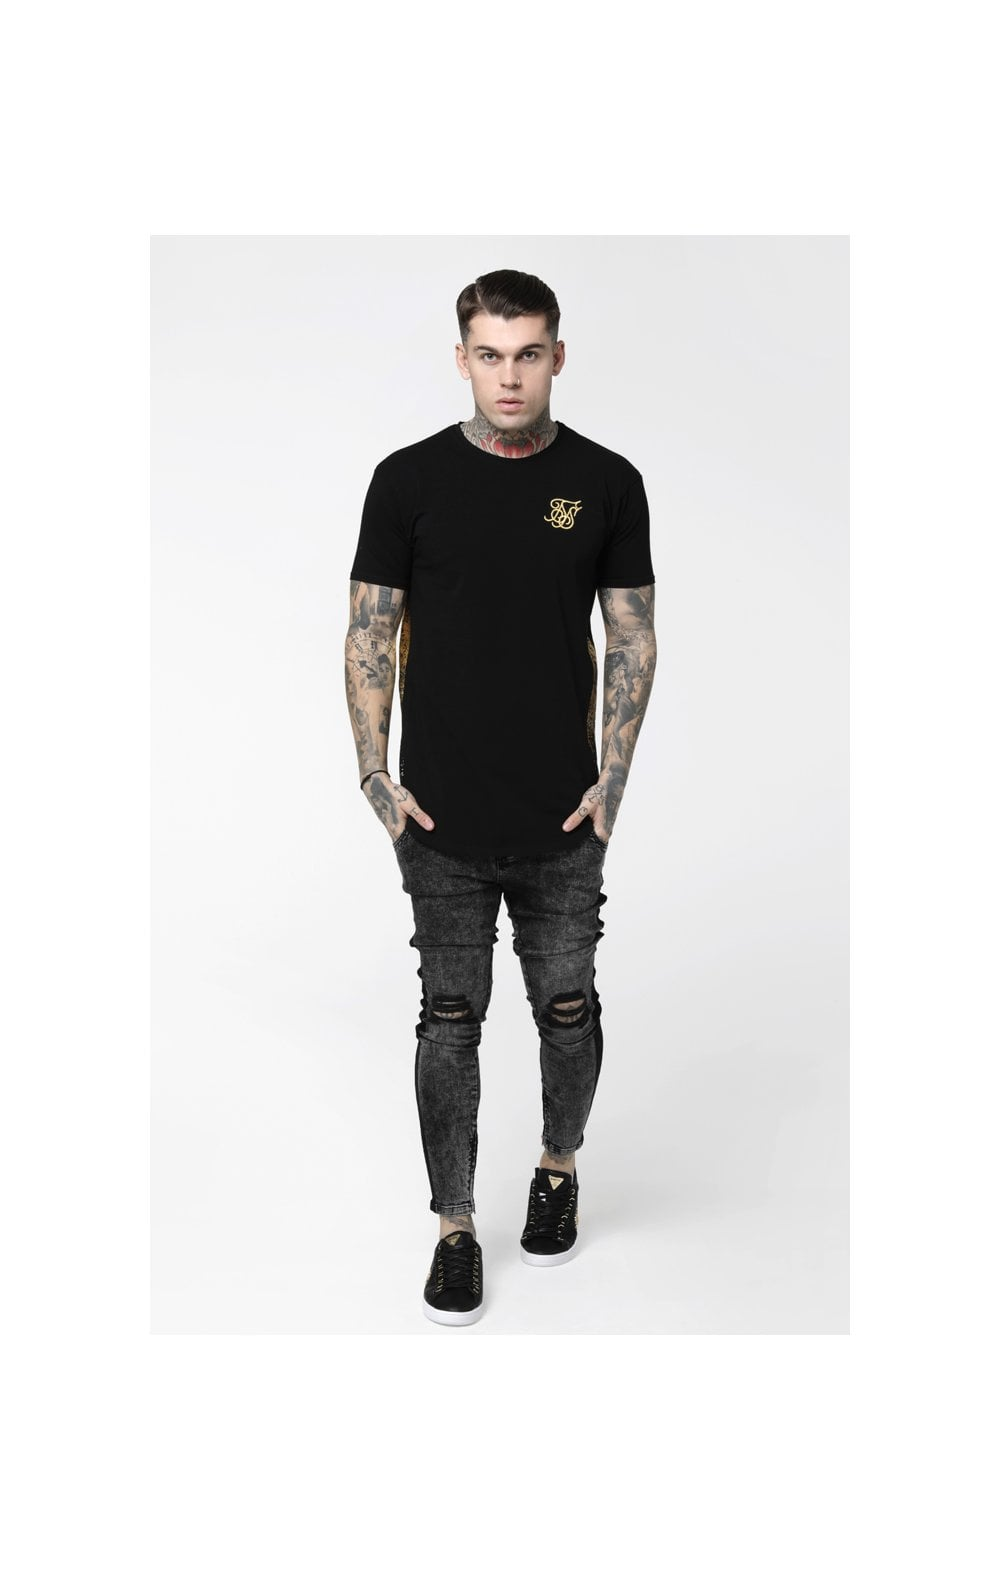 Load image into Gallery viewer, SikSilk S/S Foil Fade Panel Tee - Black & Gold (3)